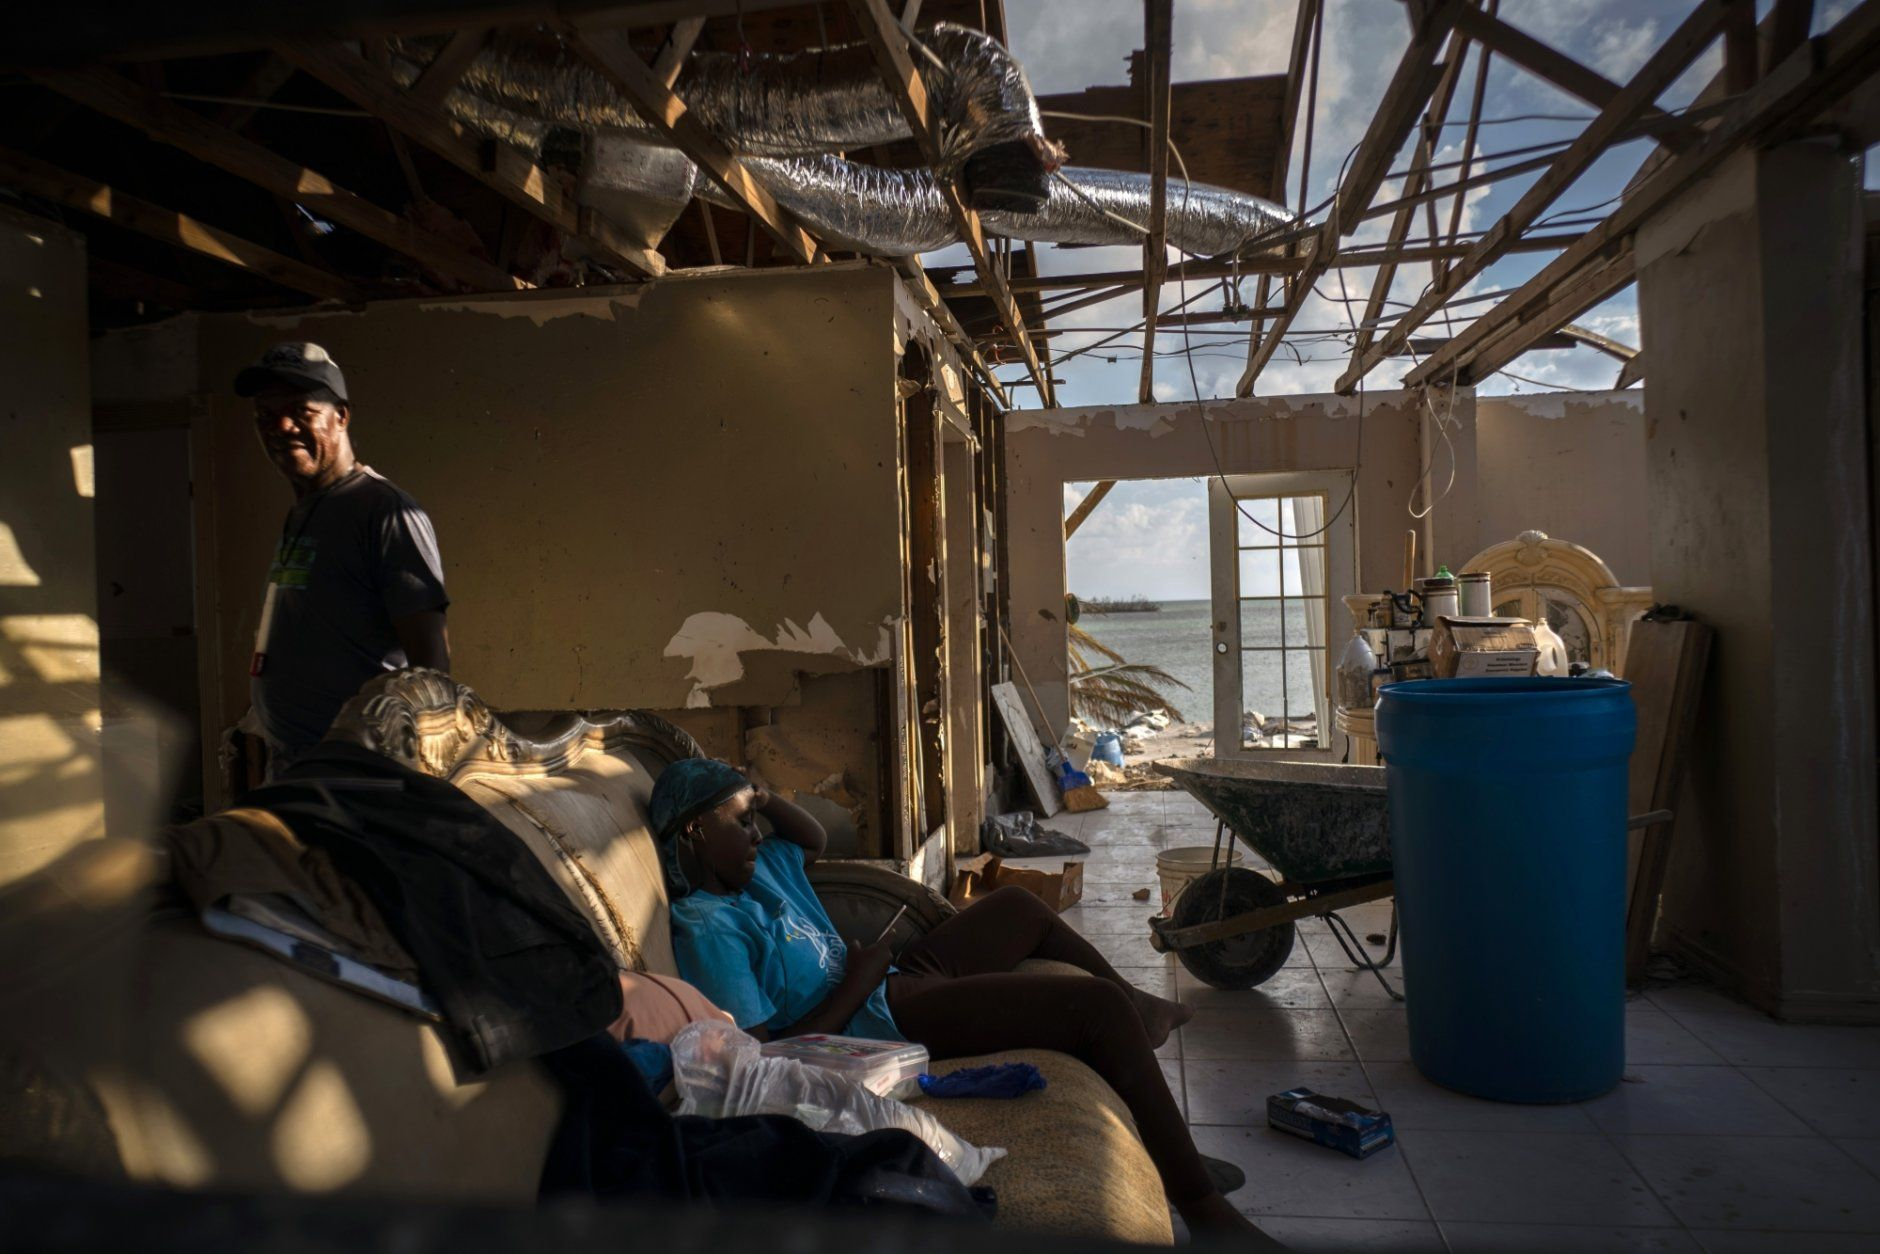 Phil Thomas, left, walks next to his daughter Ebony Thomas as she looks at her phone inside their home, shattered by Hurricane Dorian in Mclean's Town, Grand Bahama, Bahamas, Wednesday Sept. 11, 2019. Phil lost three members of his family in the Hurricane. (AP Photo / Ramon Espinosa)